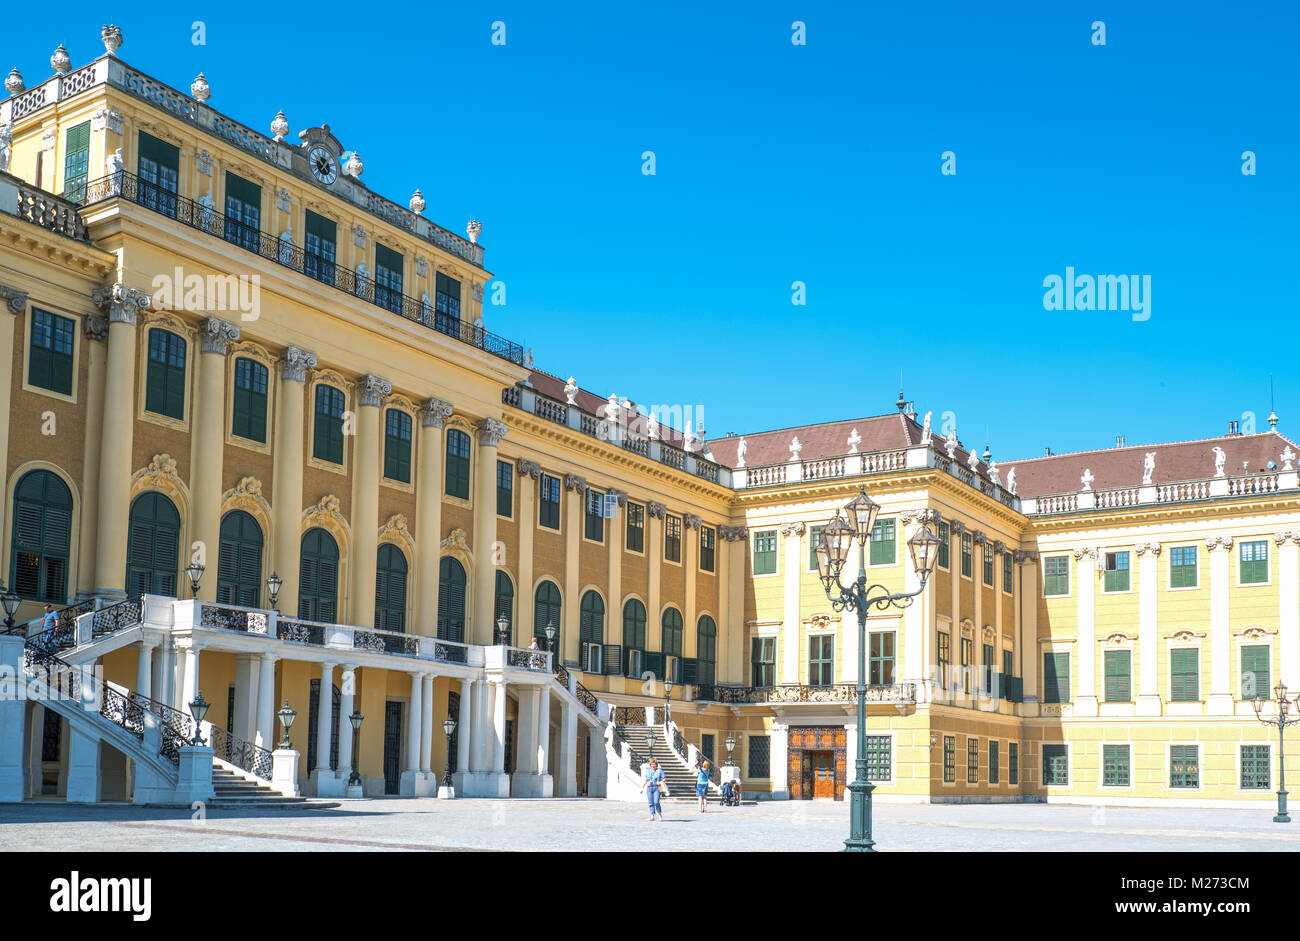 Austria, Vienna,  The main facade of the Schonbrunn Palace Stock Photo